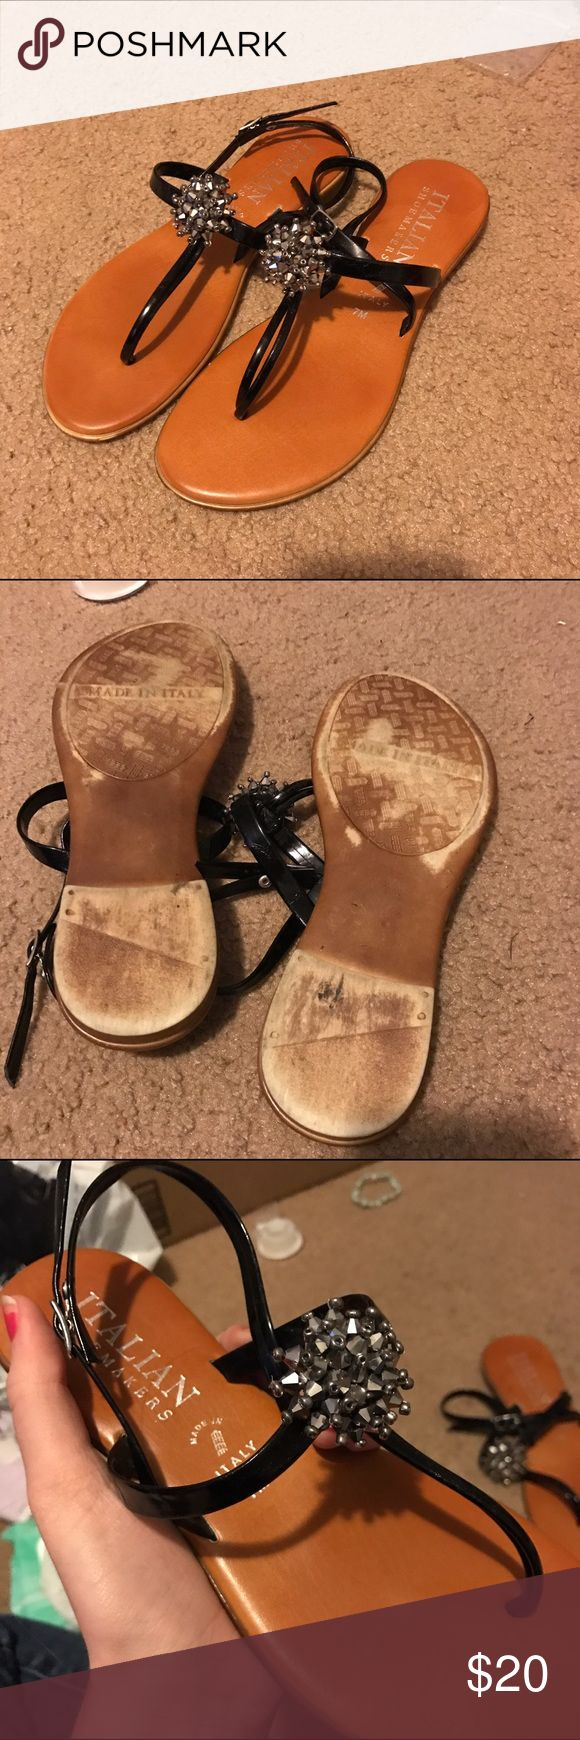 Italian Sandals Glamorous real Italian sandals from Italy. A bit scuffed on the bottom but in great condition otherwise. Feel free to make me an offer and don't forget to check out the rest of my closet because I offer a 30% discount of a bundle of 3 items or more! Italian Shoemakers Shoes Sandals